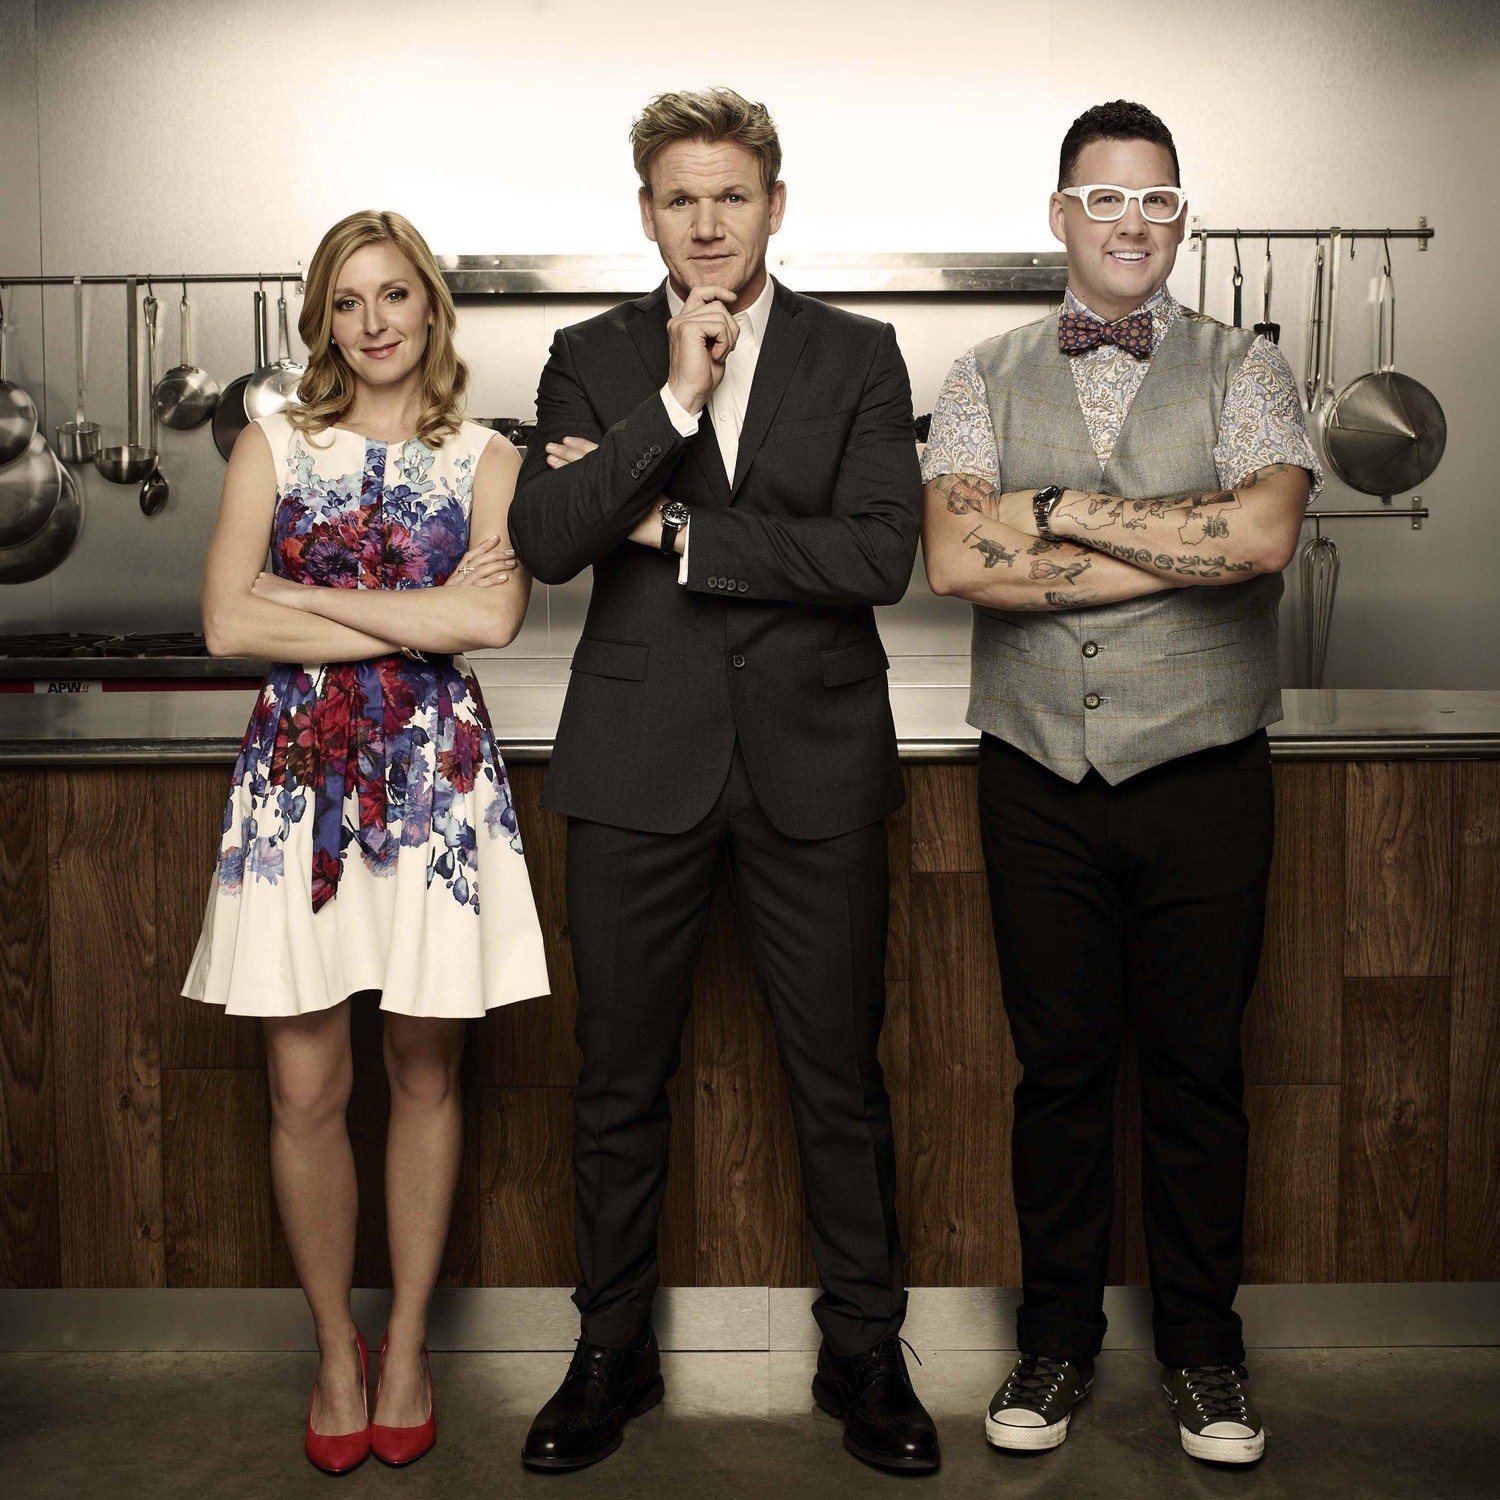 `MasterChef`: Host and award-winning chef Gordon Ramsay (center), acclaimed chef Graham Elliot and Christina Tosi, renowned pastry chef, owner and founder of New York City's Milk Bar, star in FOX's top-rated reality cooking series. (FOX photo)